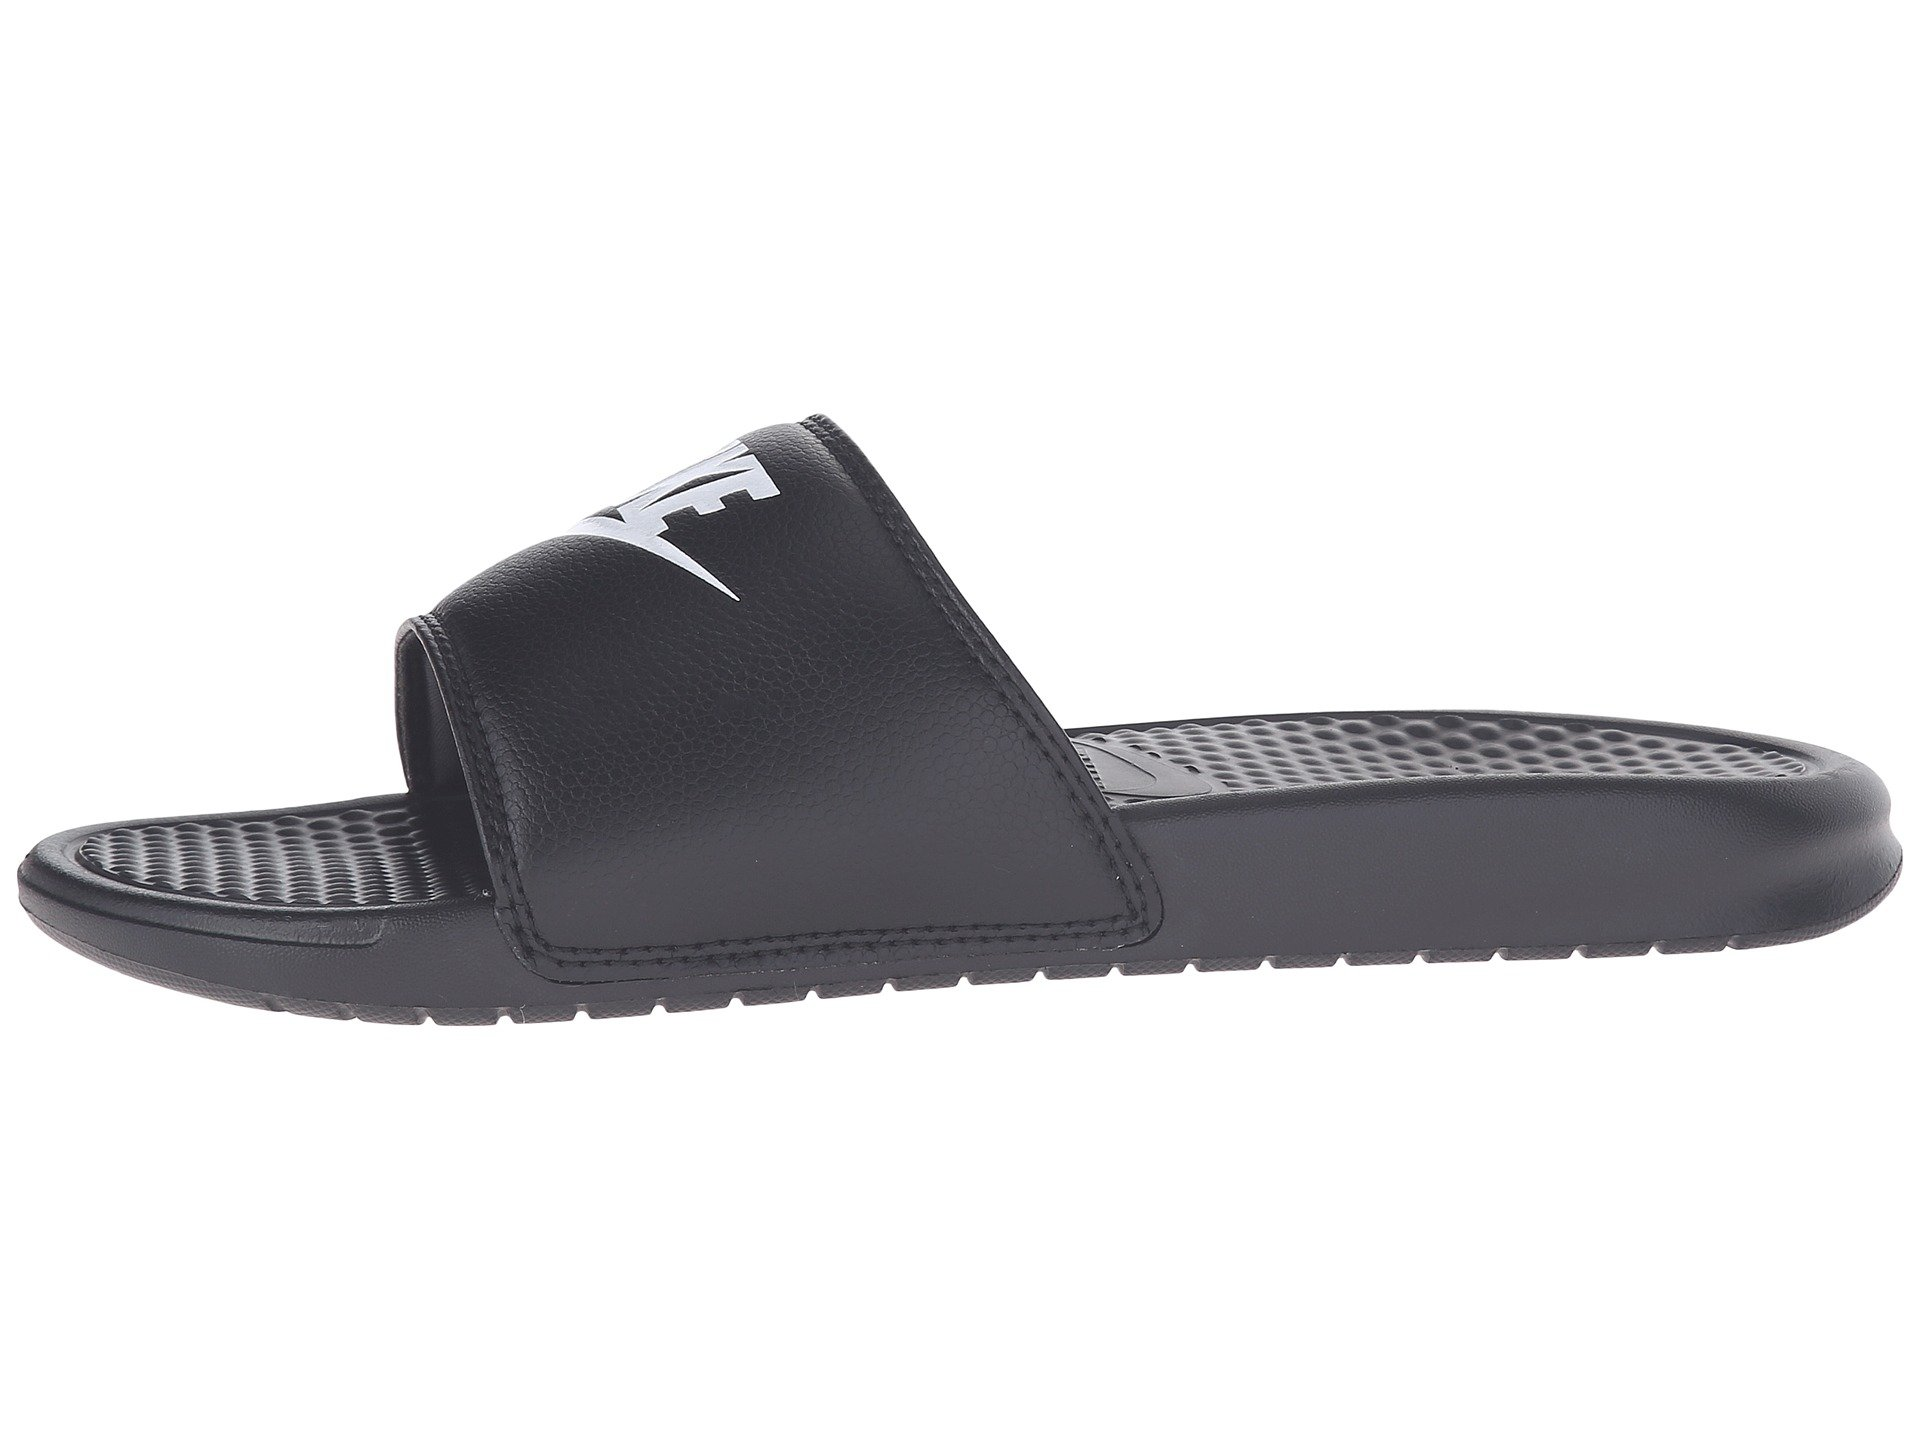 nike benassi jdi slides black and white Nike Benassi Solarsoft NBA ... 3f0c40979